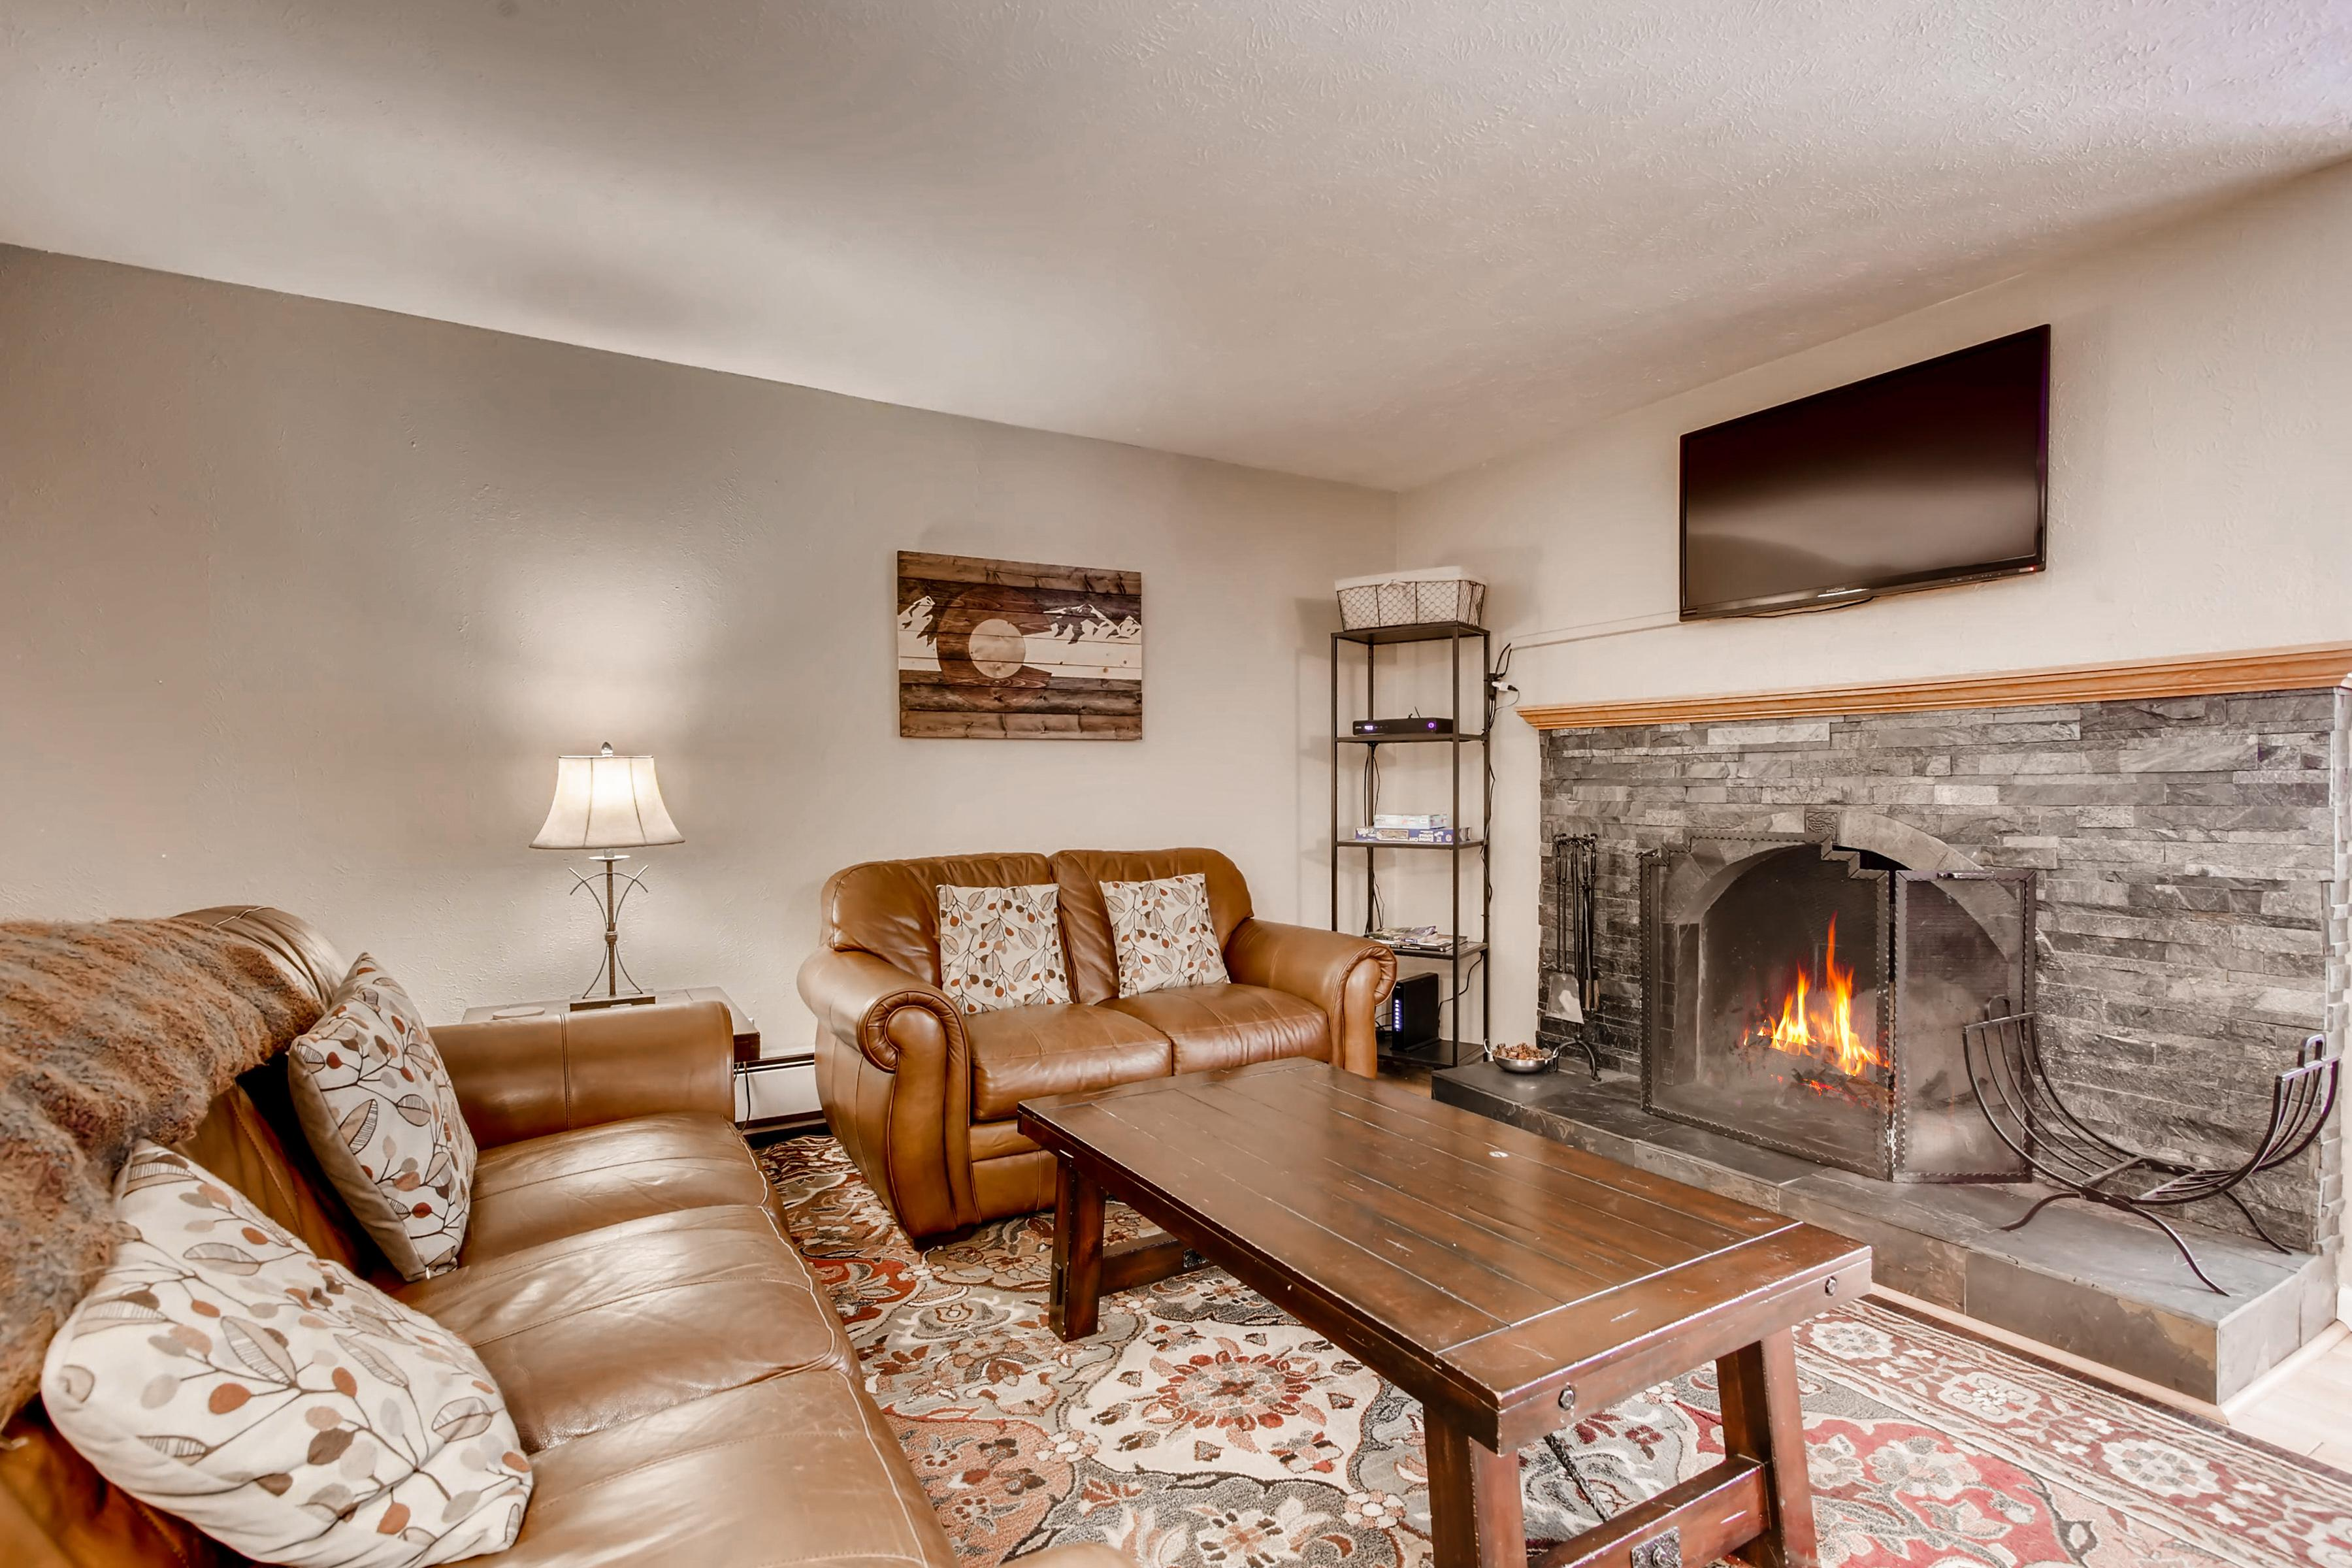 Welcome to Breckenridge! This townhome is professionally managed by TurnKey Vacation Rentals.